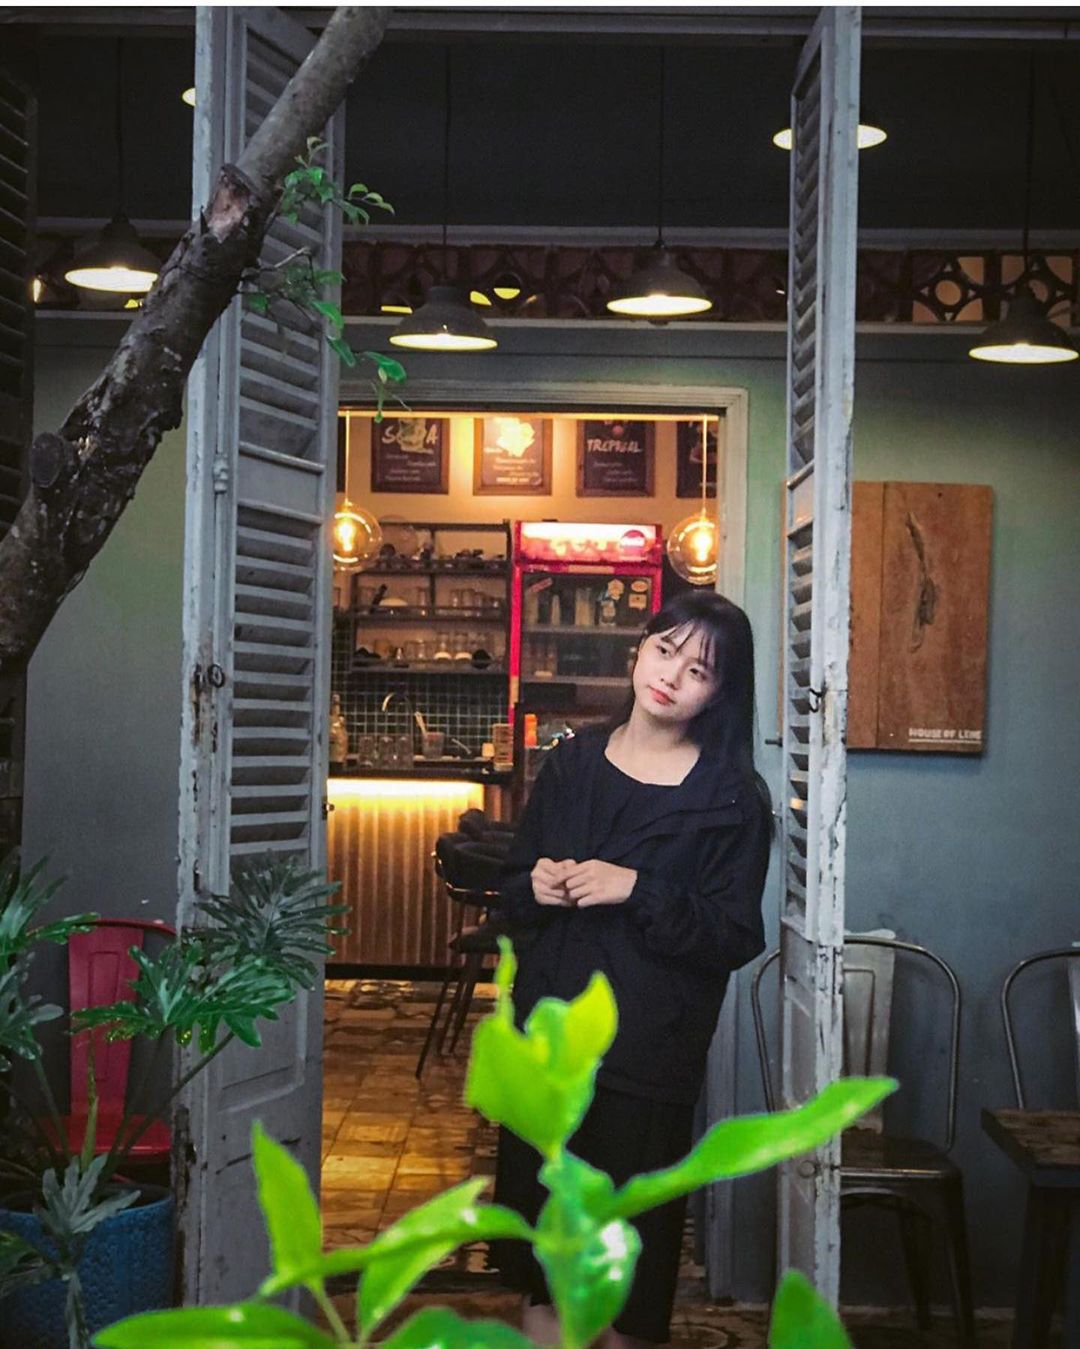 quan cafe buon me thuot house of lens coffee 2